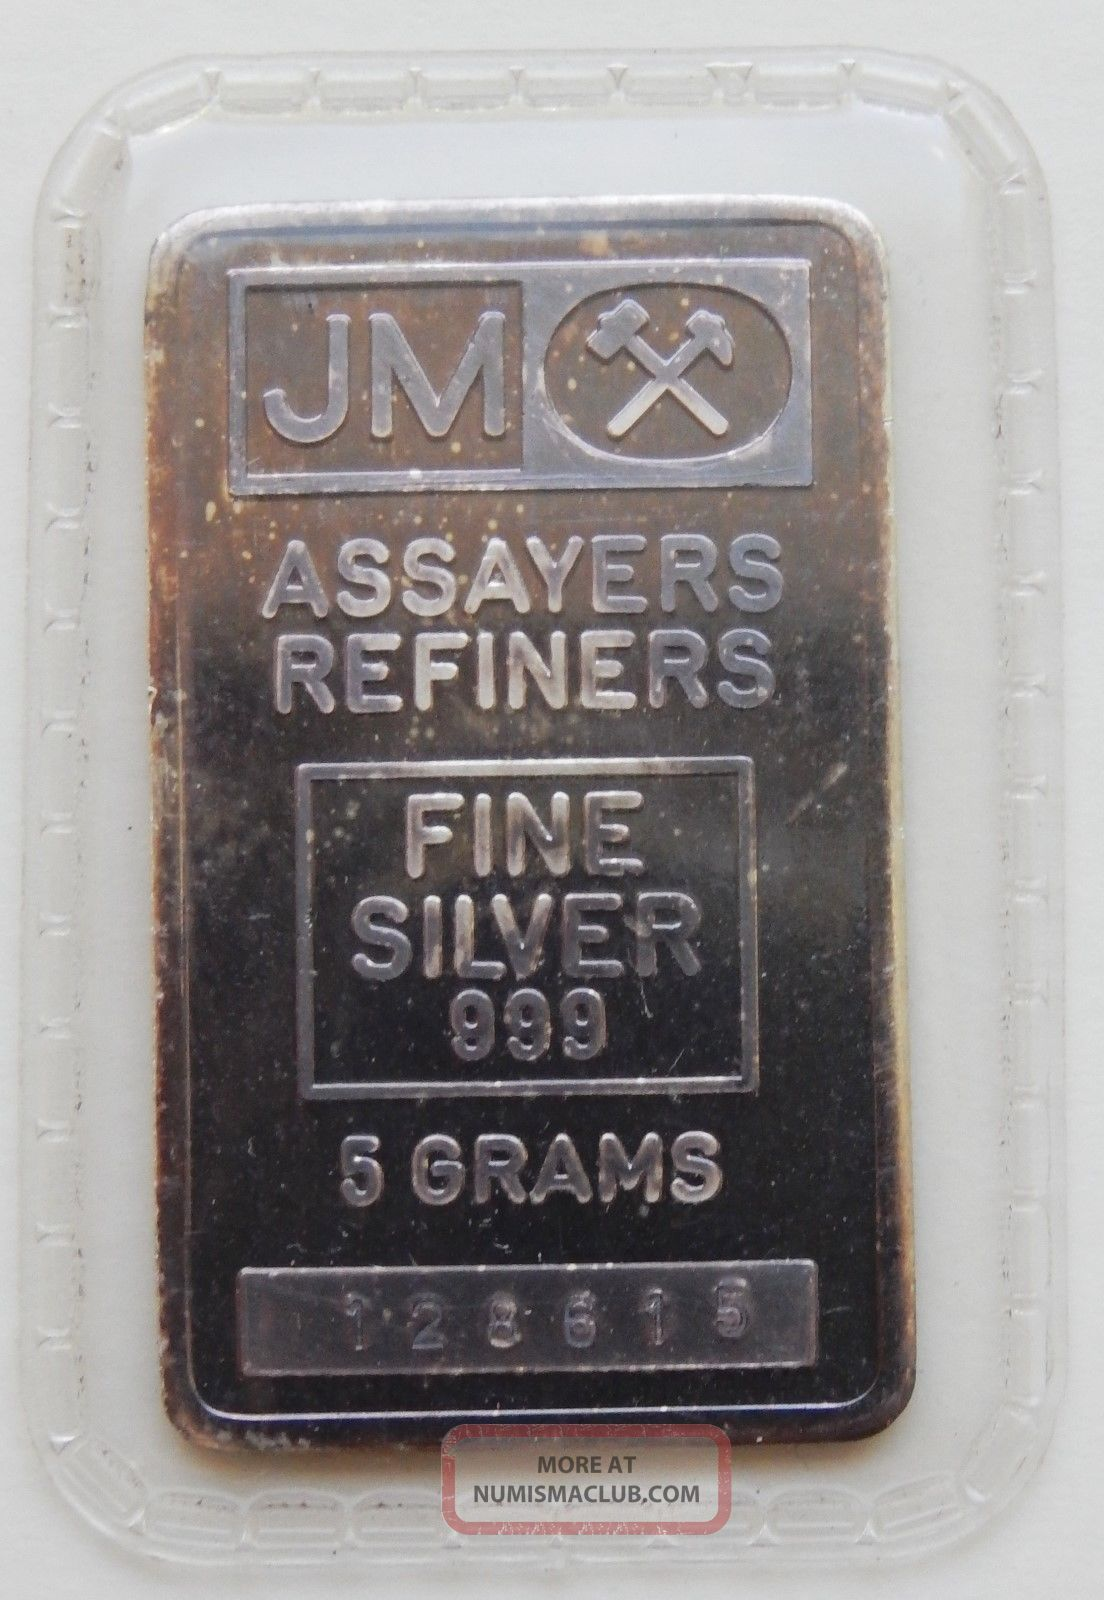 5 Grams Jm Assayers Johnson Matthey 999 Fine Silver Bar Scarce